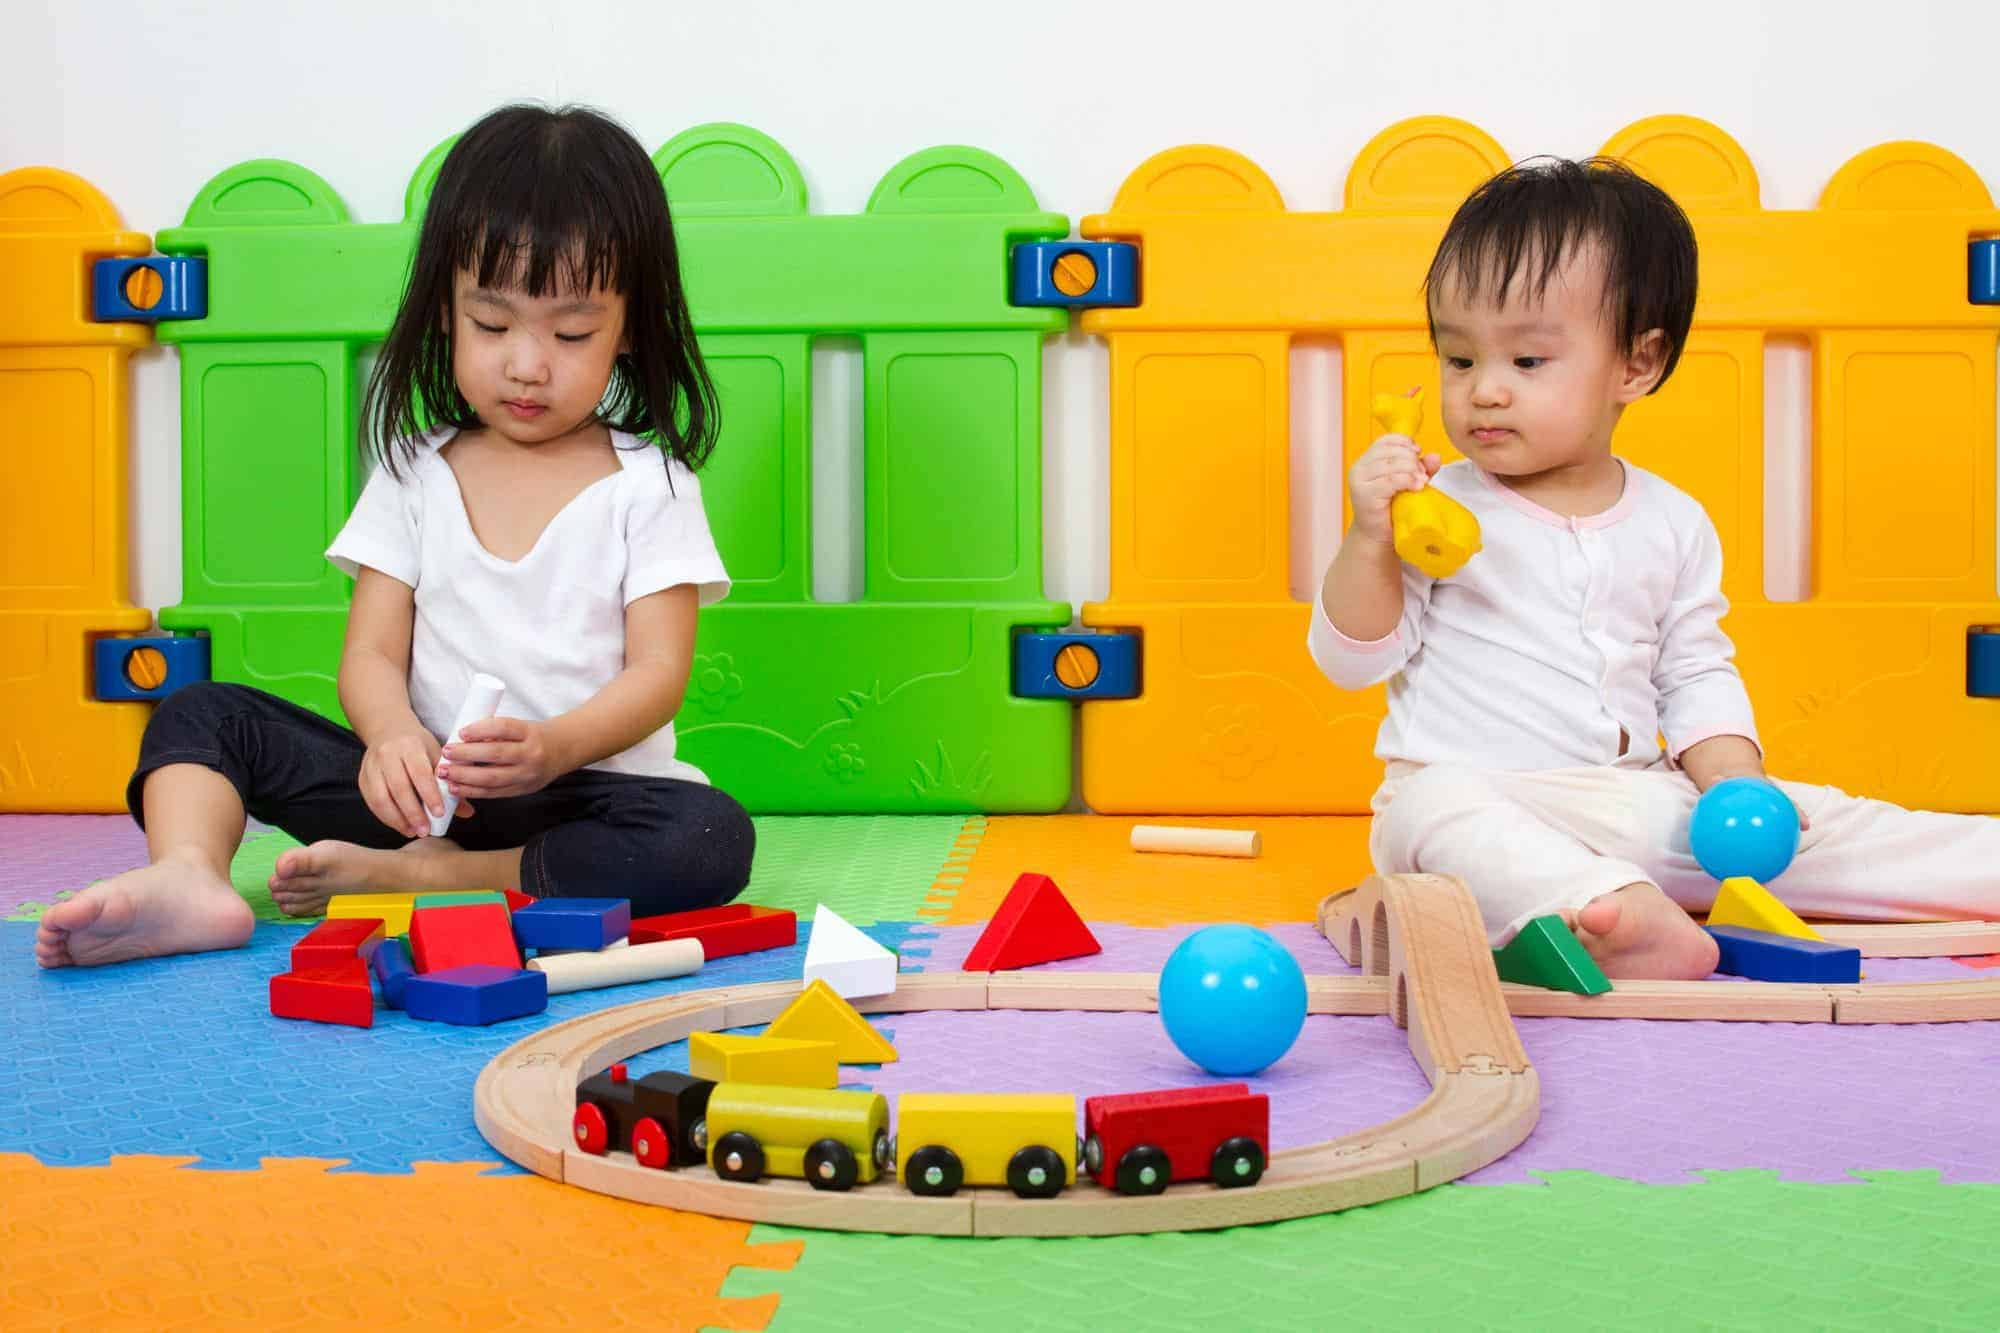 In Home Childcare play